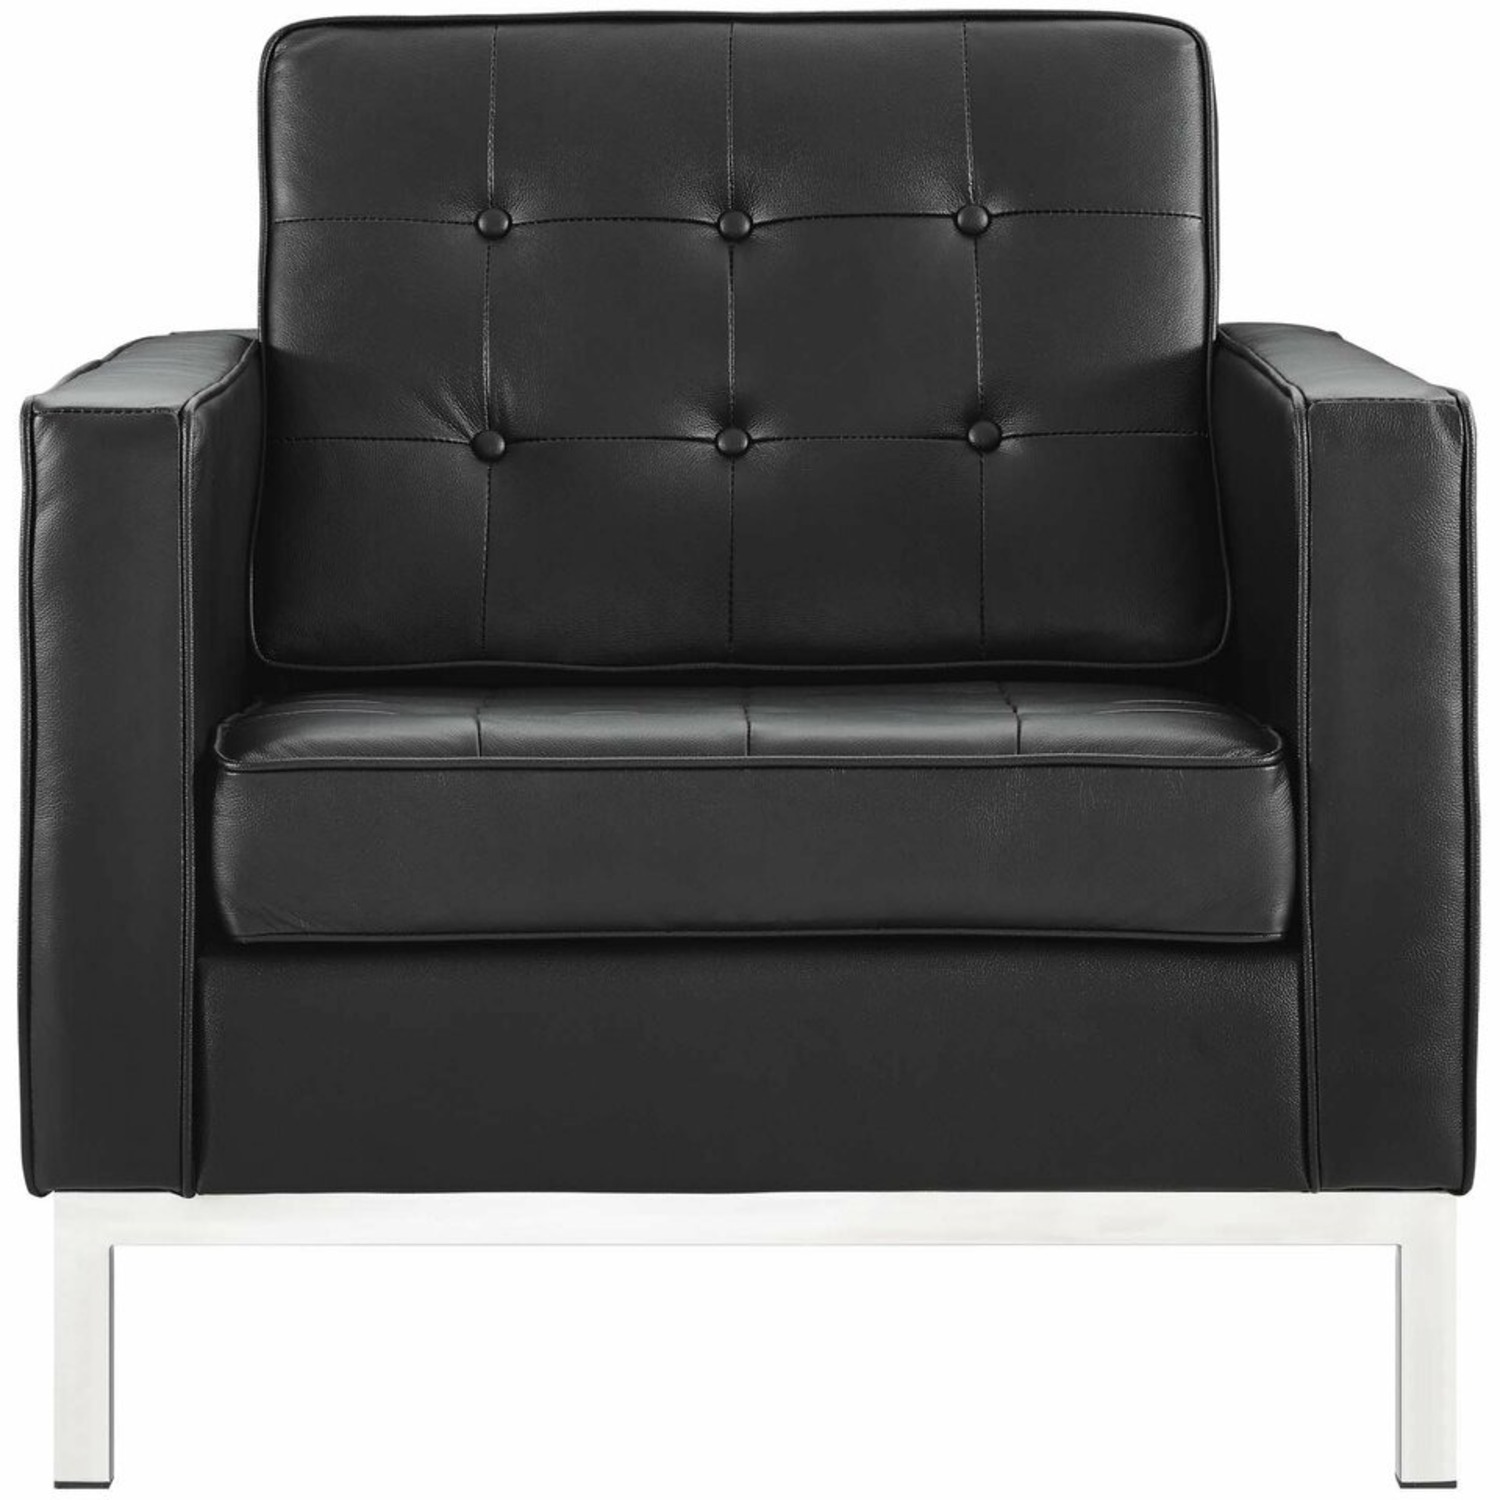 Modern Armchair In Black Leather W/ Tufted Buttons - image-1